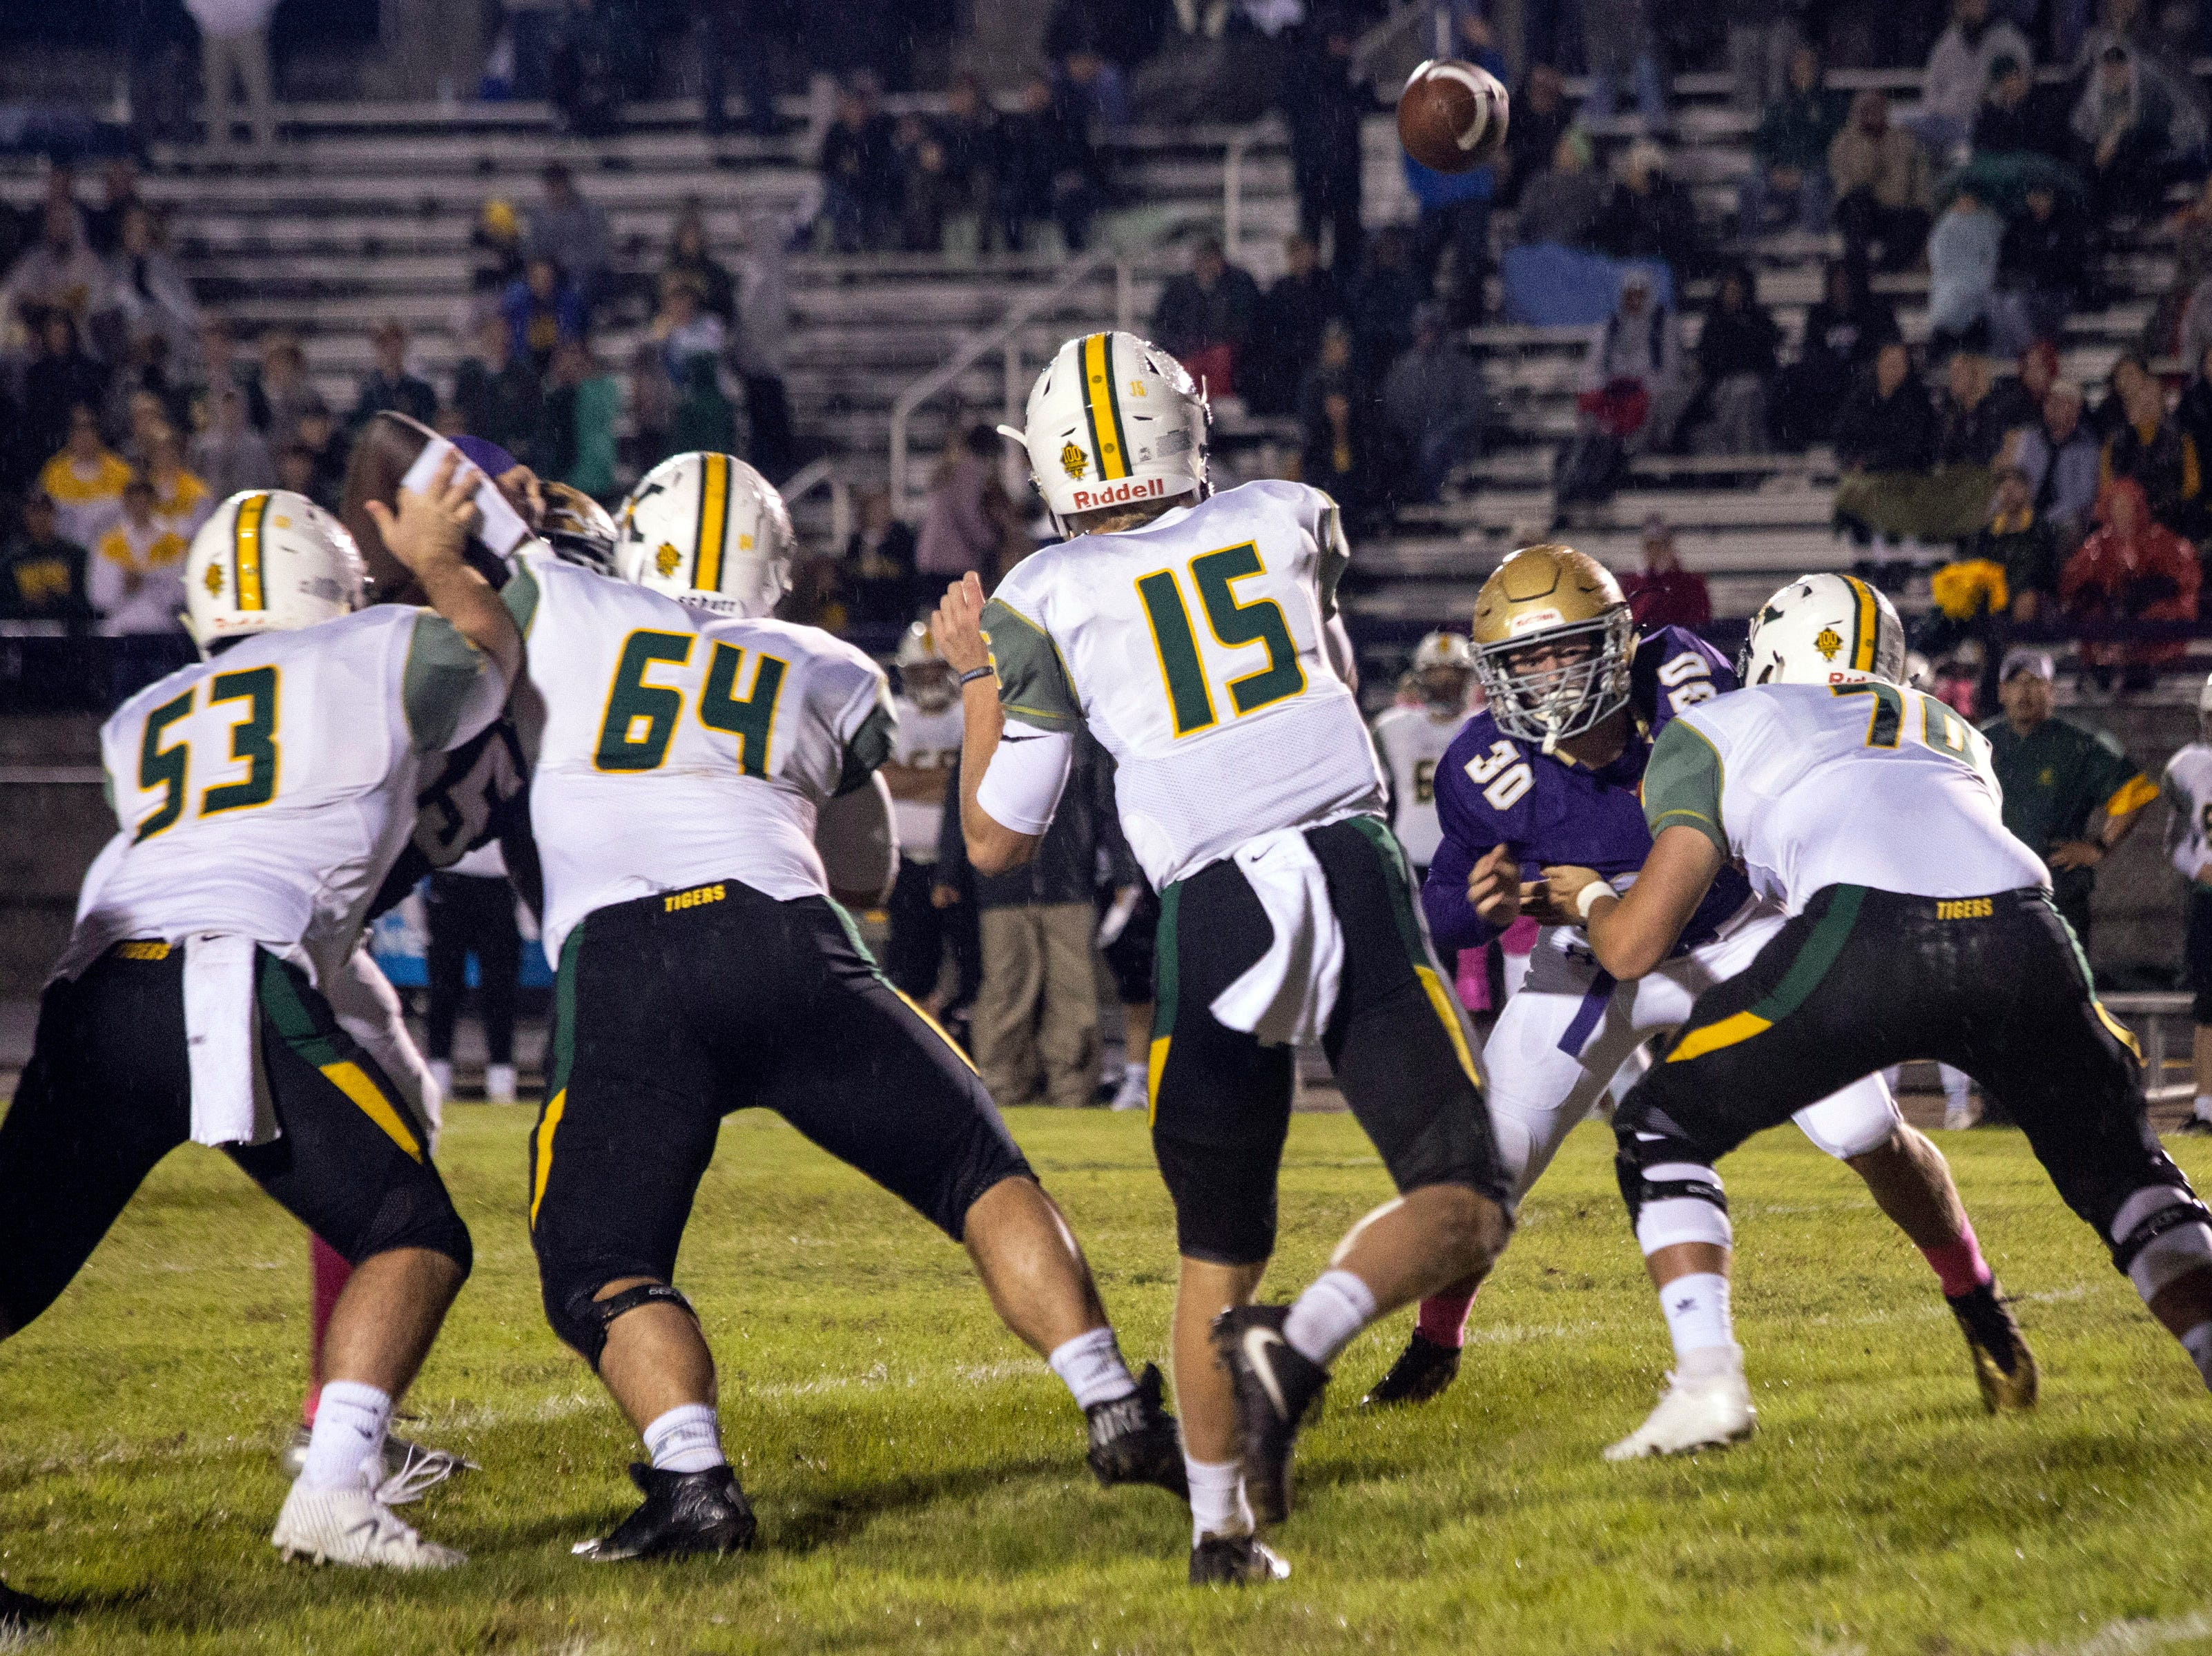 St. X quarterback Douglas Bodhaine lets one fly against the Male defense. Oct. 12, 2018